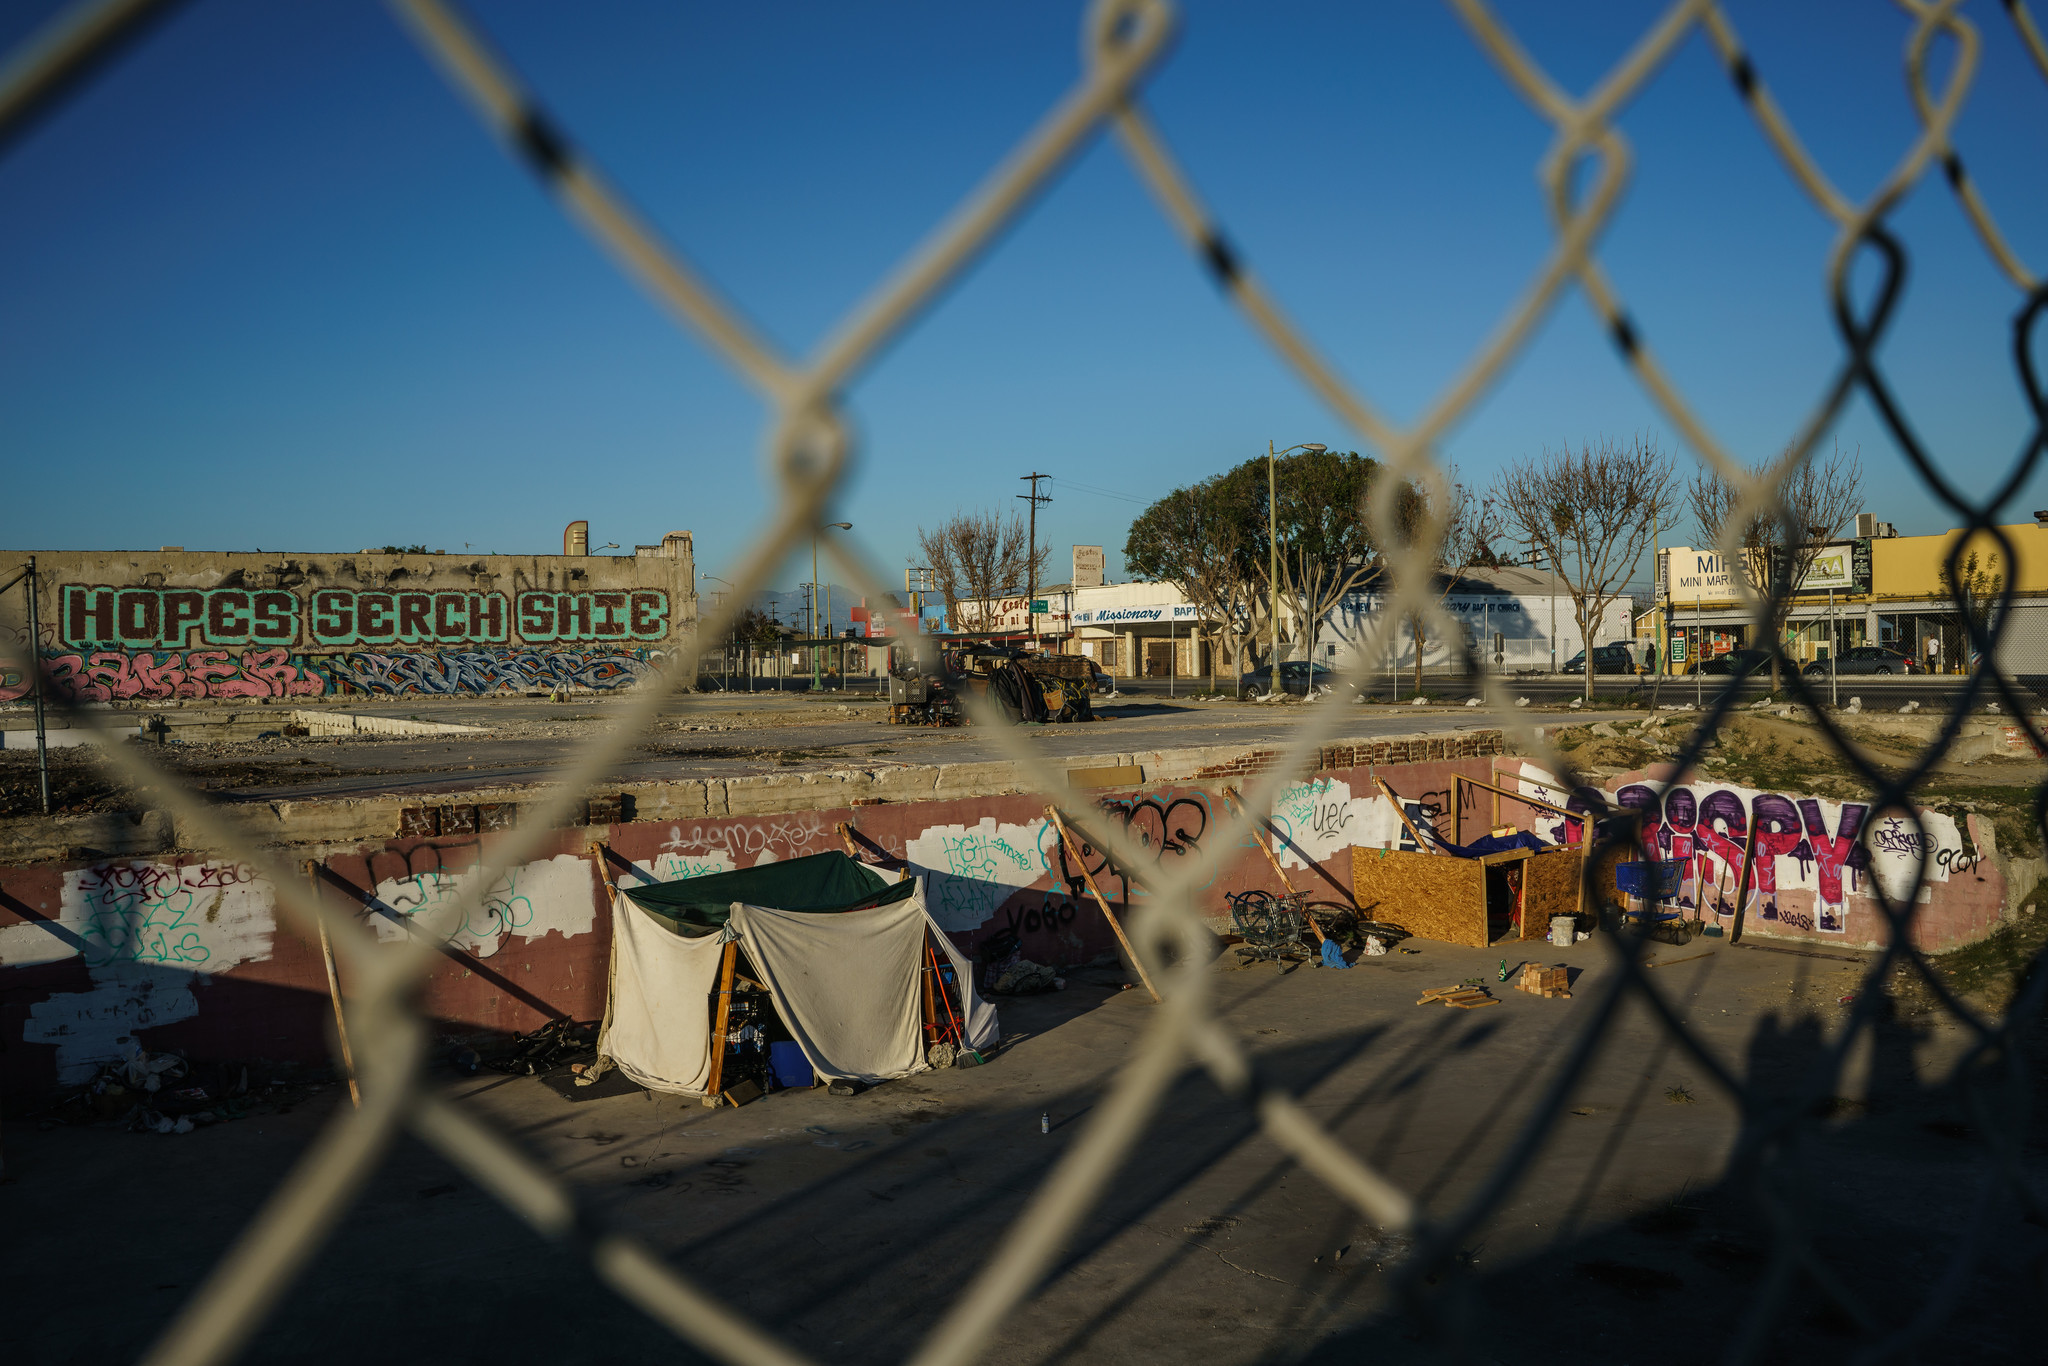 LOS ANGELES, CALIF. — WEDNESDAY, FEBRUARY 7, 2018: Homeless encampment in a property owned by Neigh